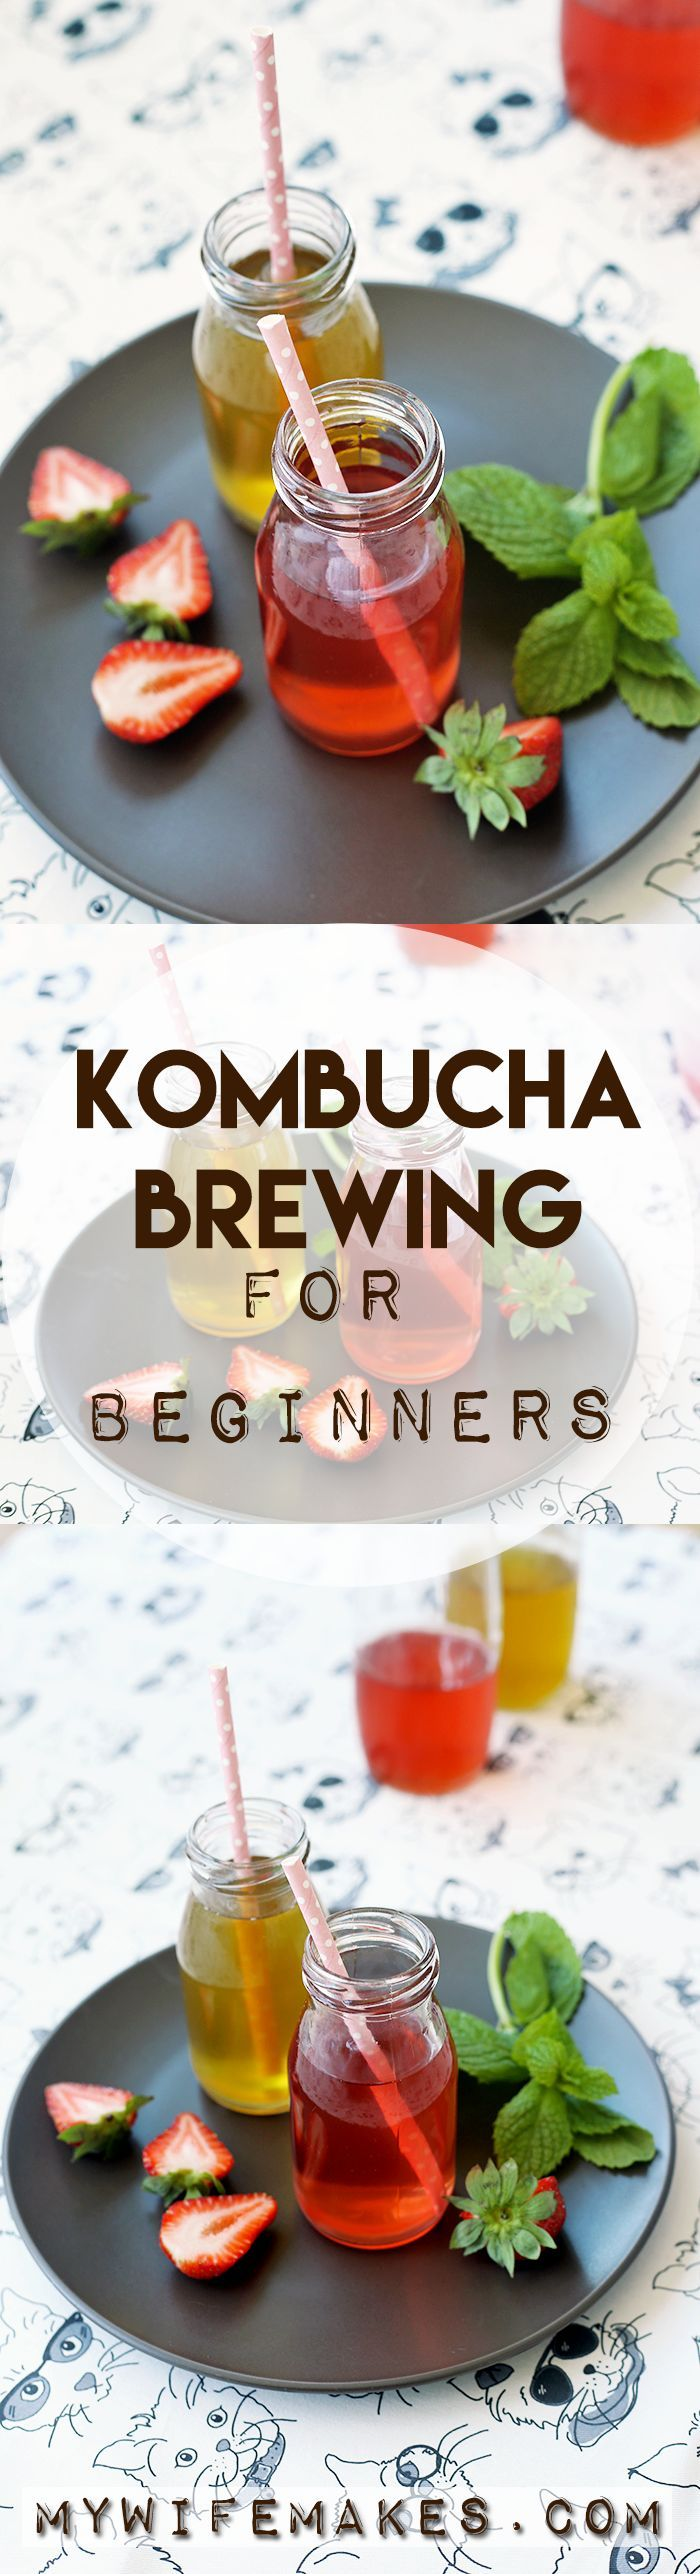 How To Brew Kombucha: A Beginner's Guide